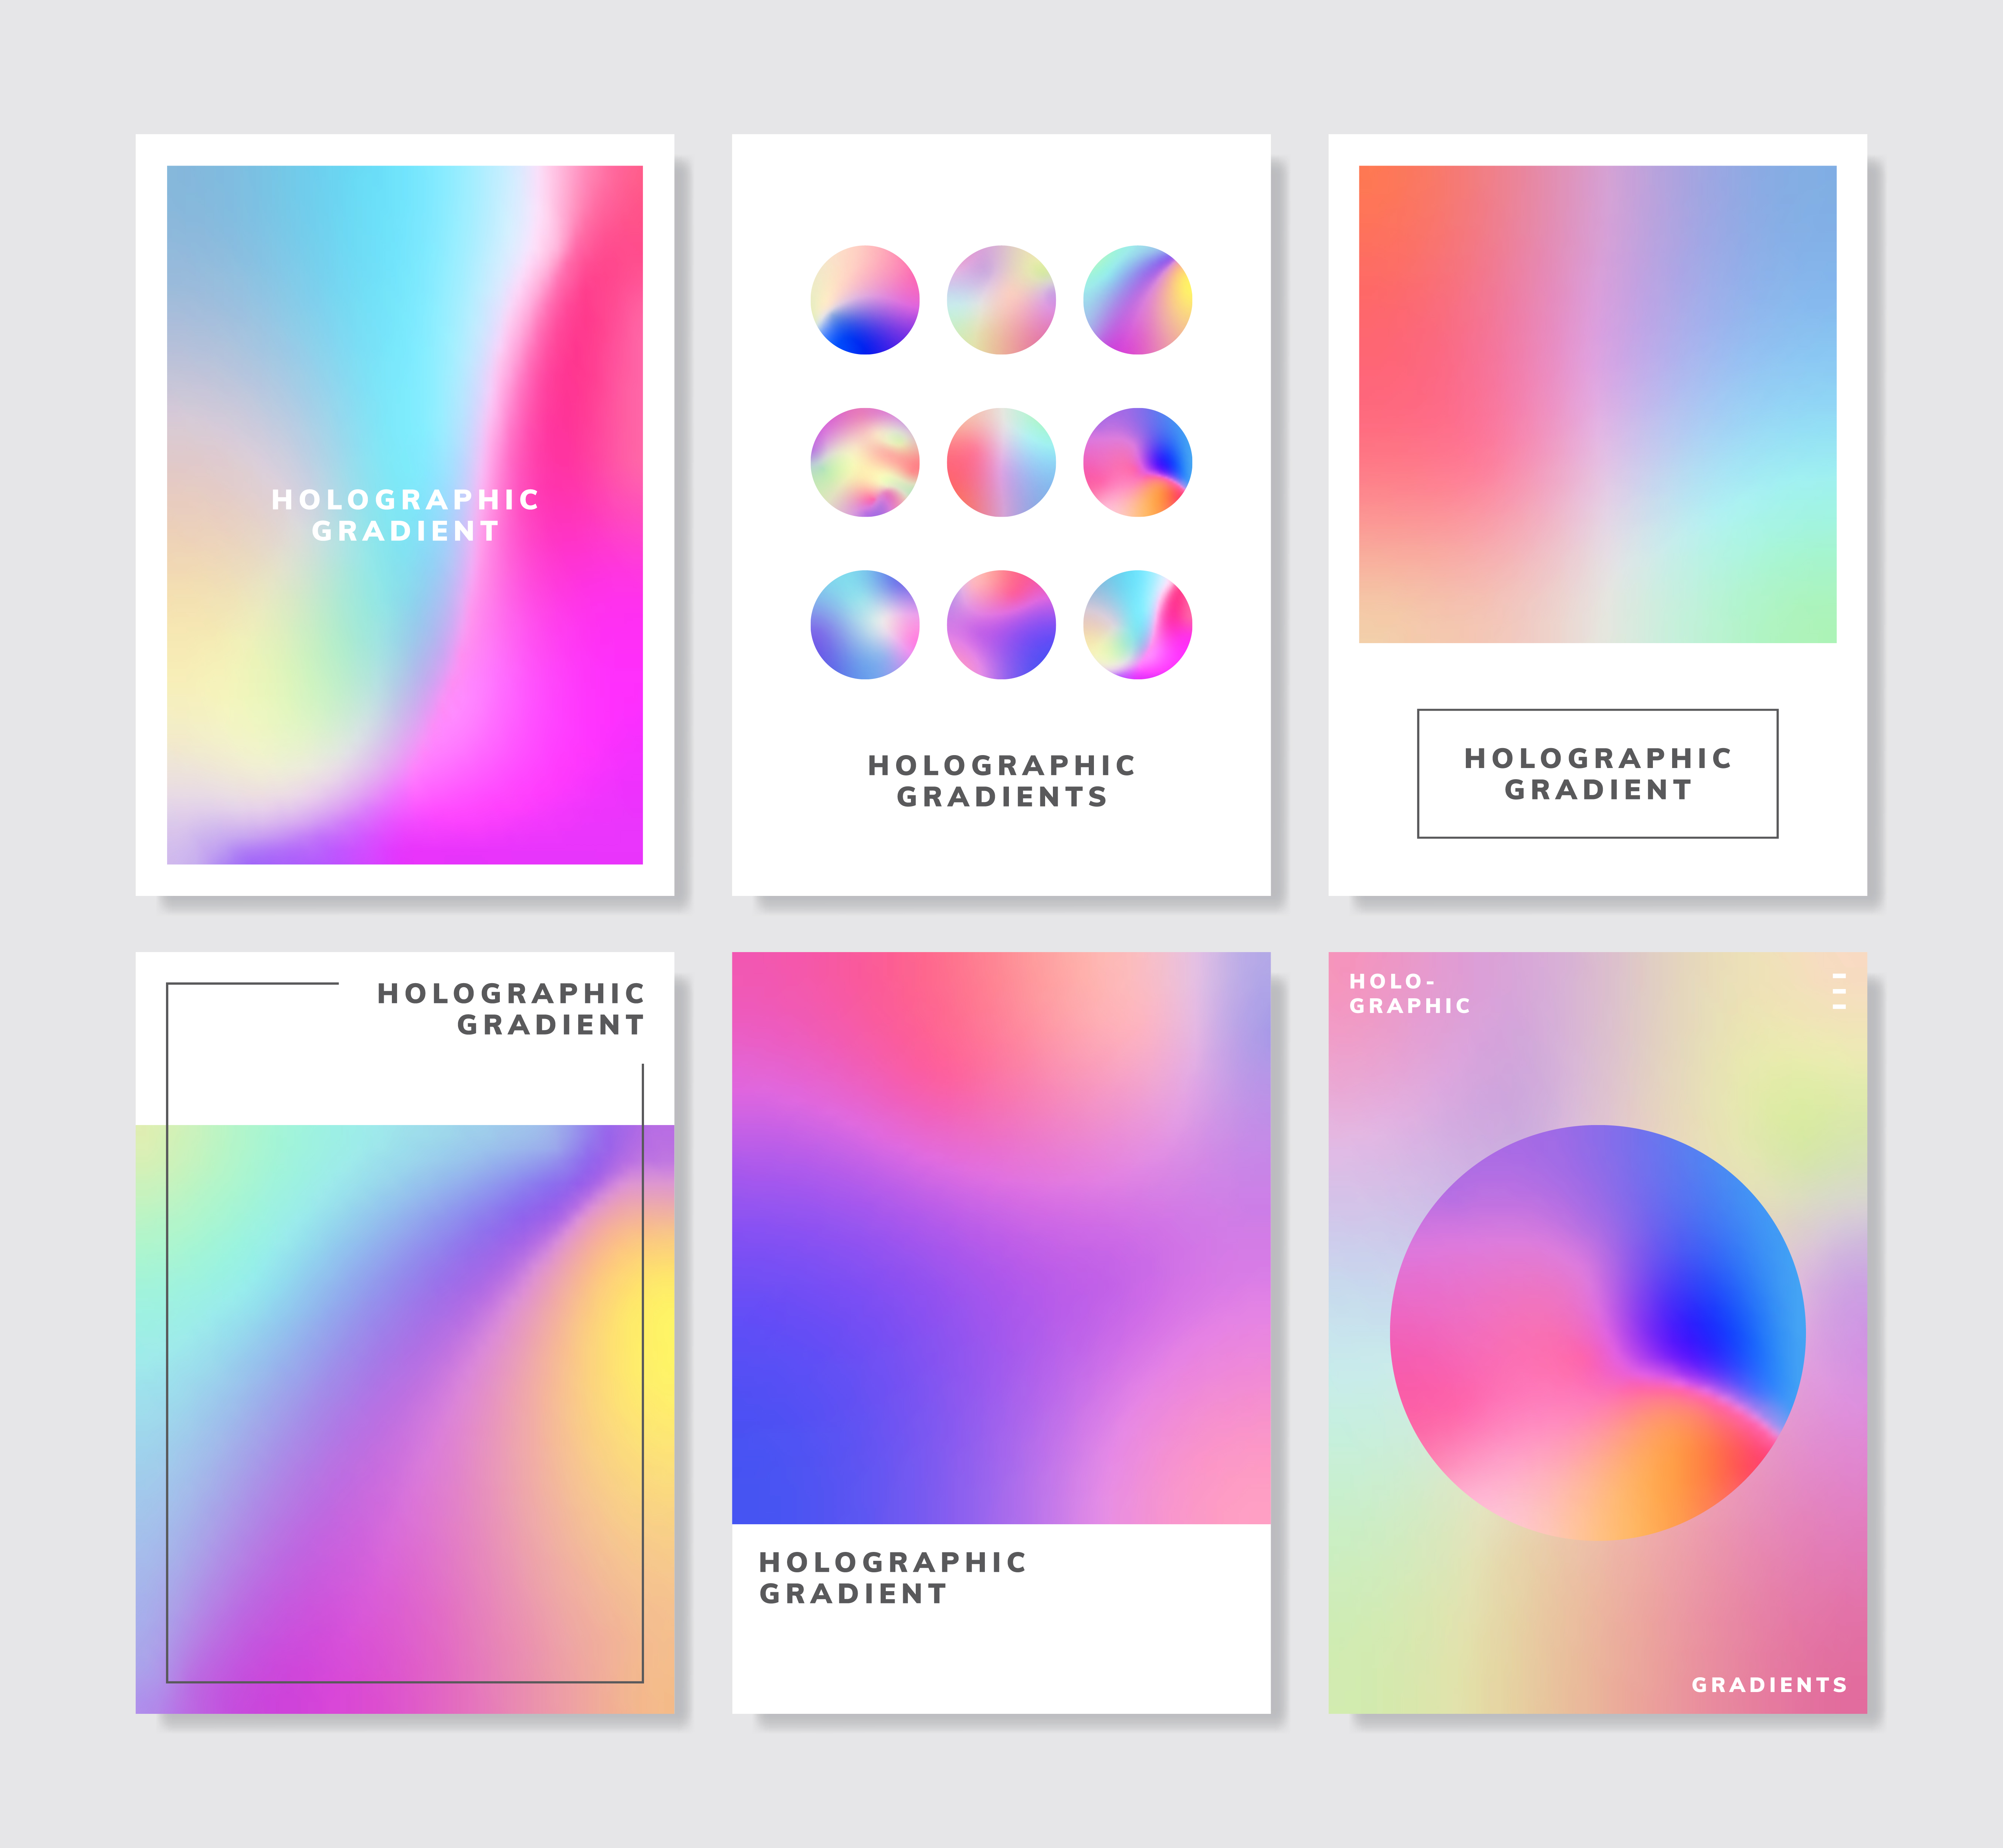 Bright Colors and Gradients | 6 Tips to Make your Web Design Shine in 2019